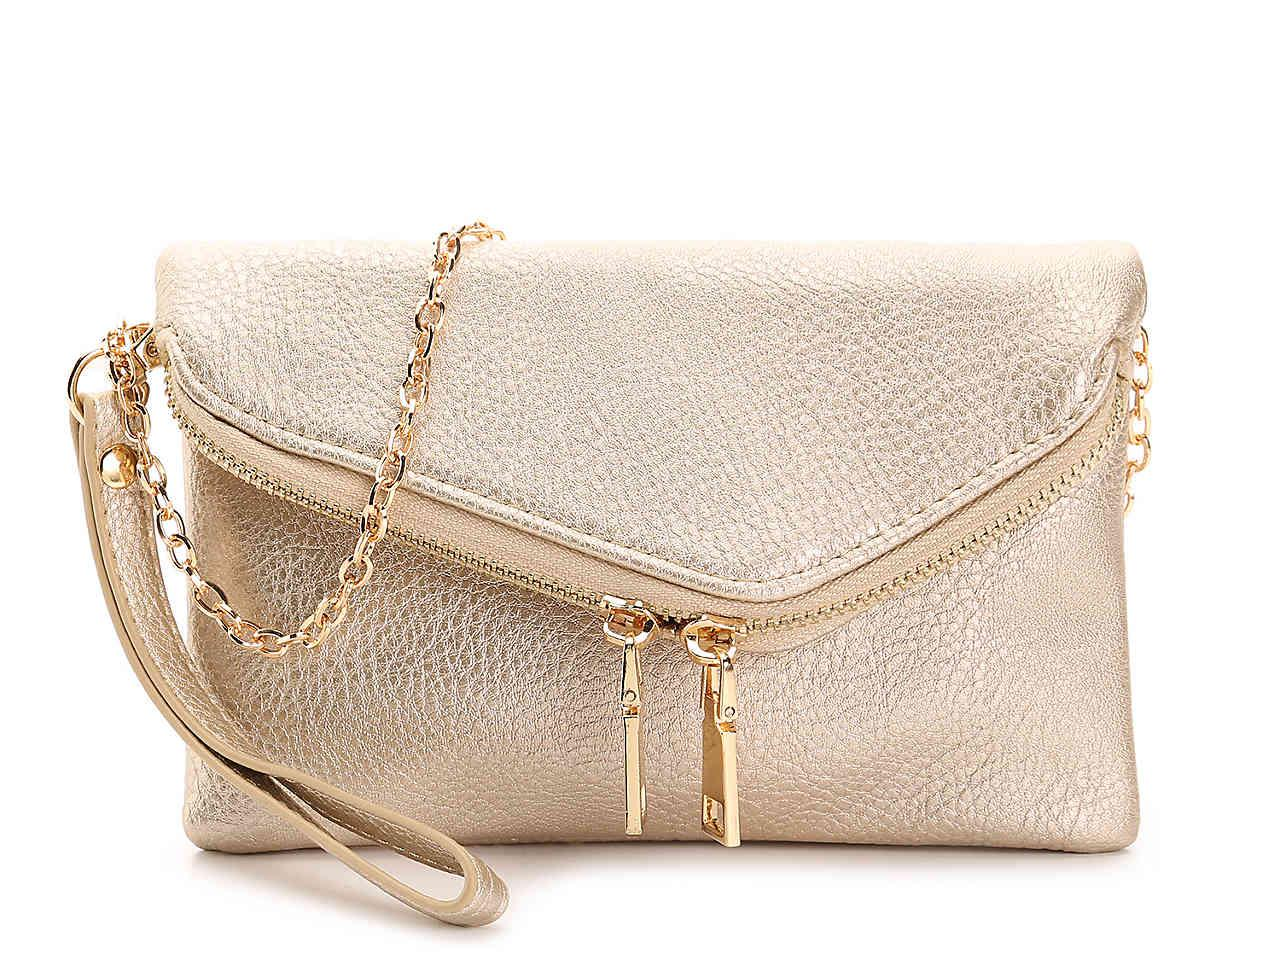 Lyst - Urban Expressions Lucy Crossbody Bag in Metallic 12be842c20492